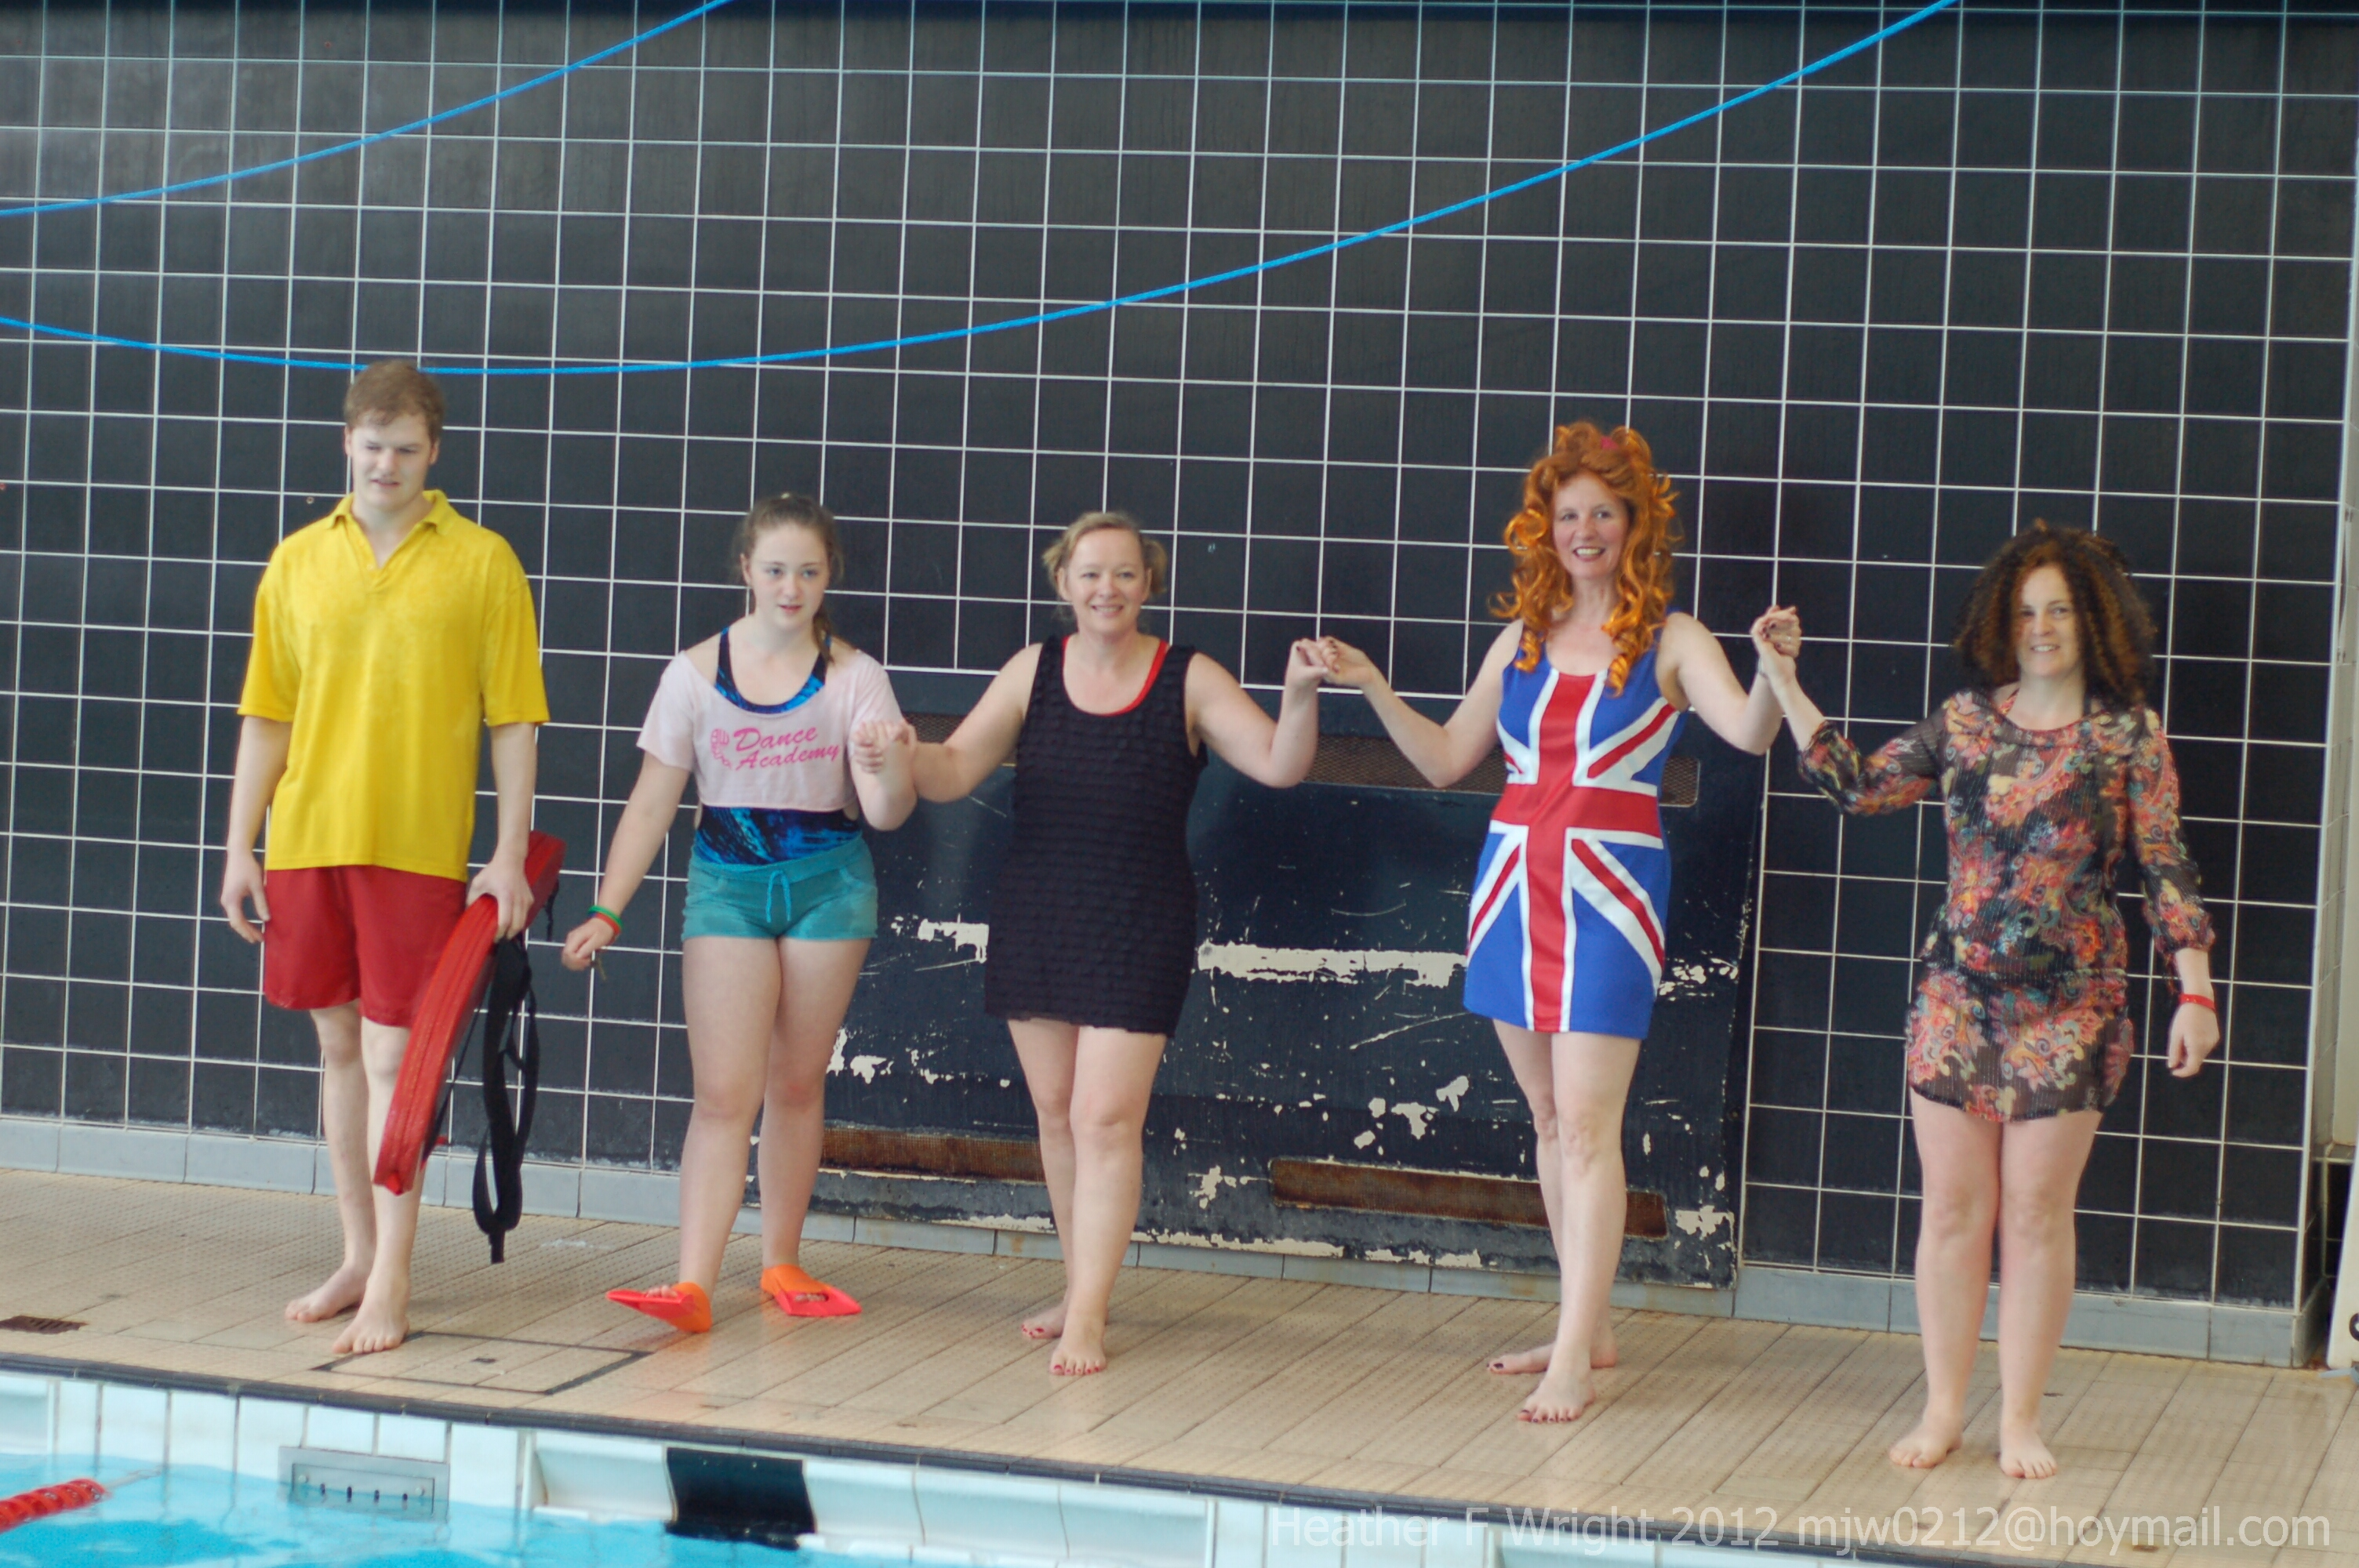 West Lancashire Mayoress and her Spice Girls at the Ormskirk Swimathon April 2012